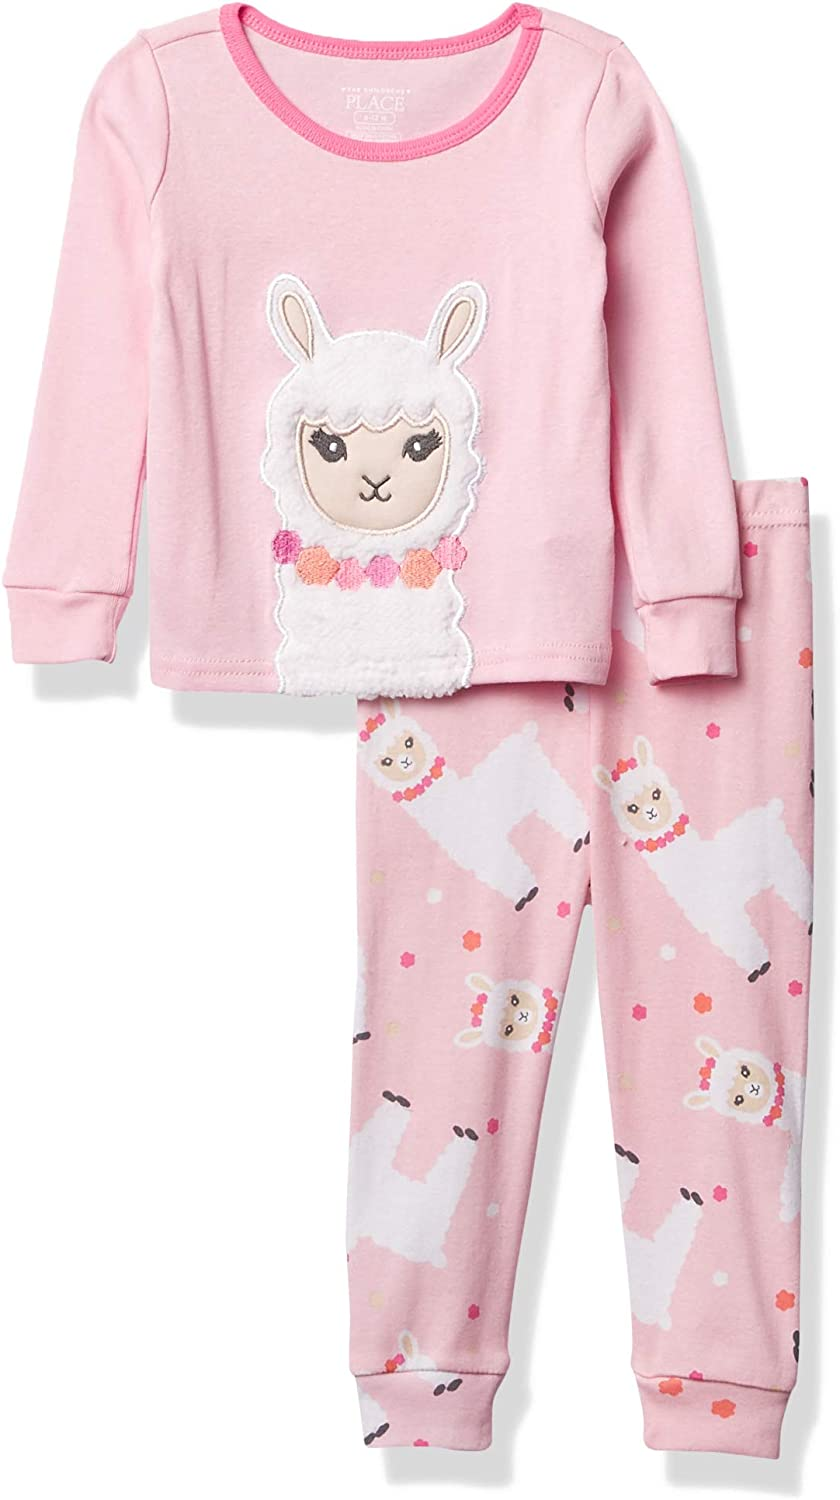 The Children's Place Girls' Baby and Toddler Llama Snug Fit Cotton Pajamas